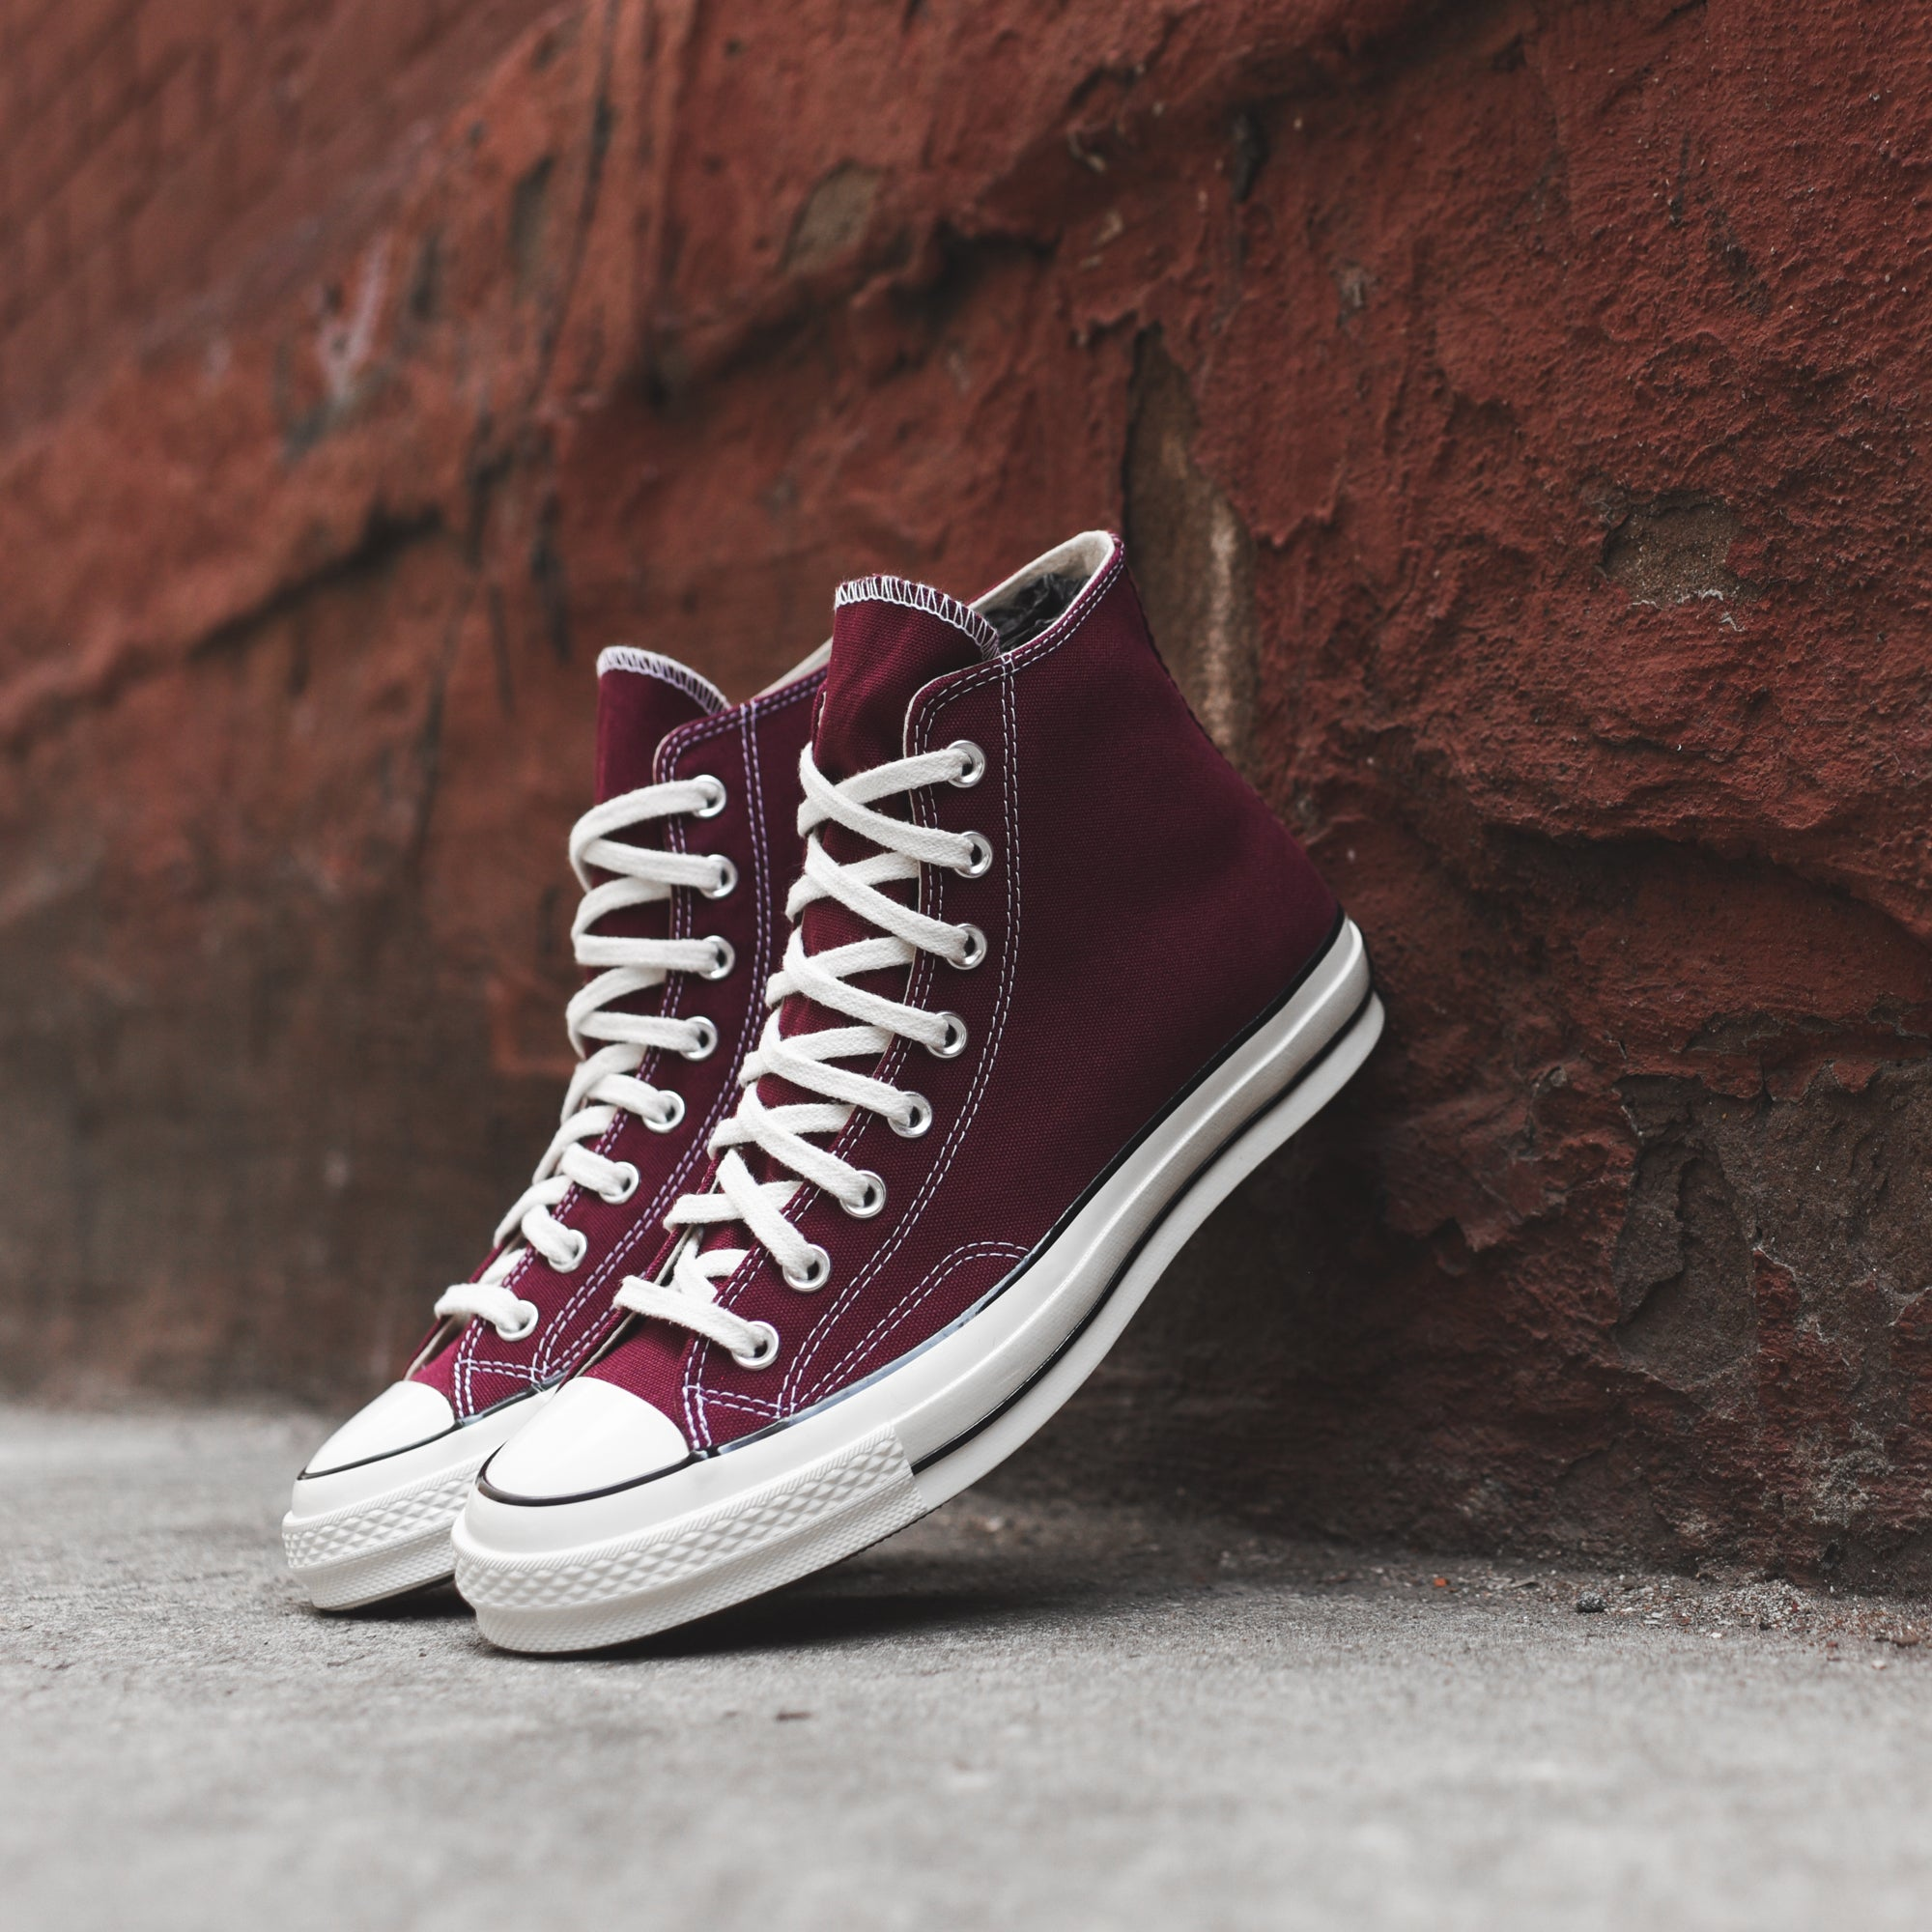 Converse CT 70 Hi Dark Burgundy